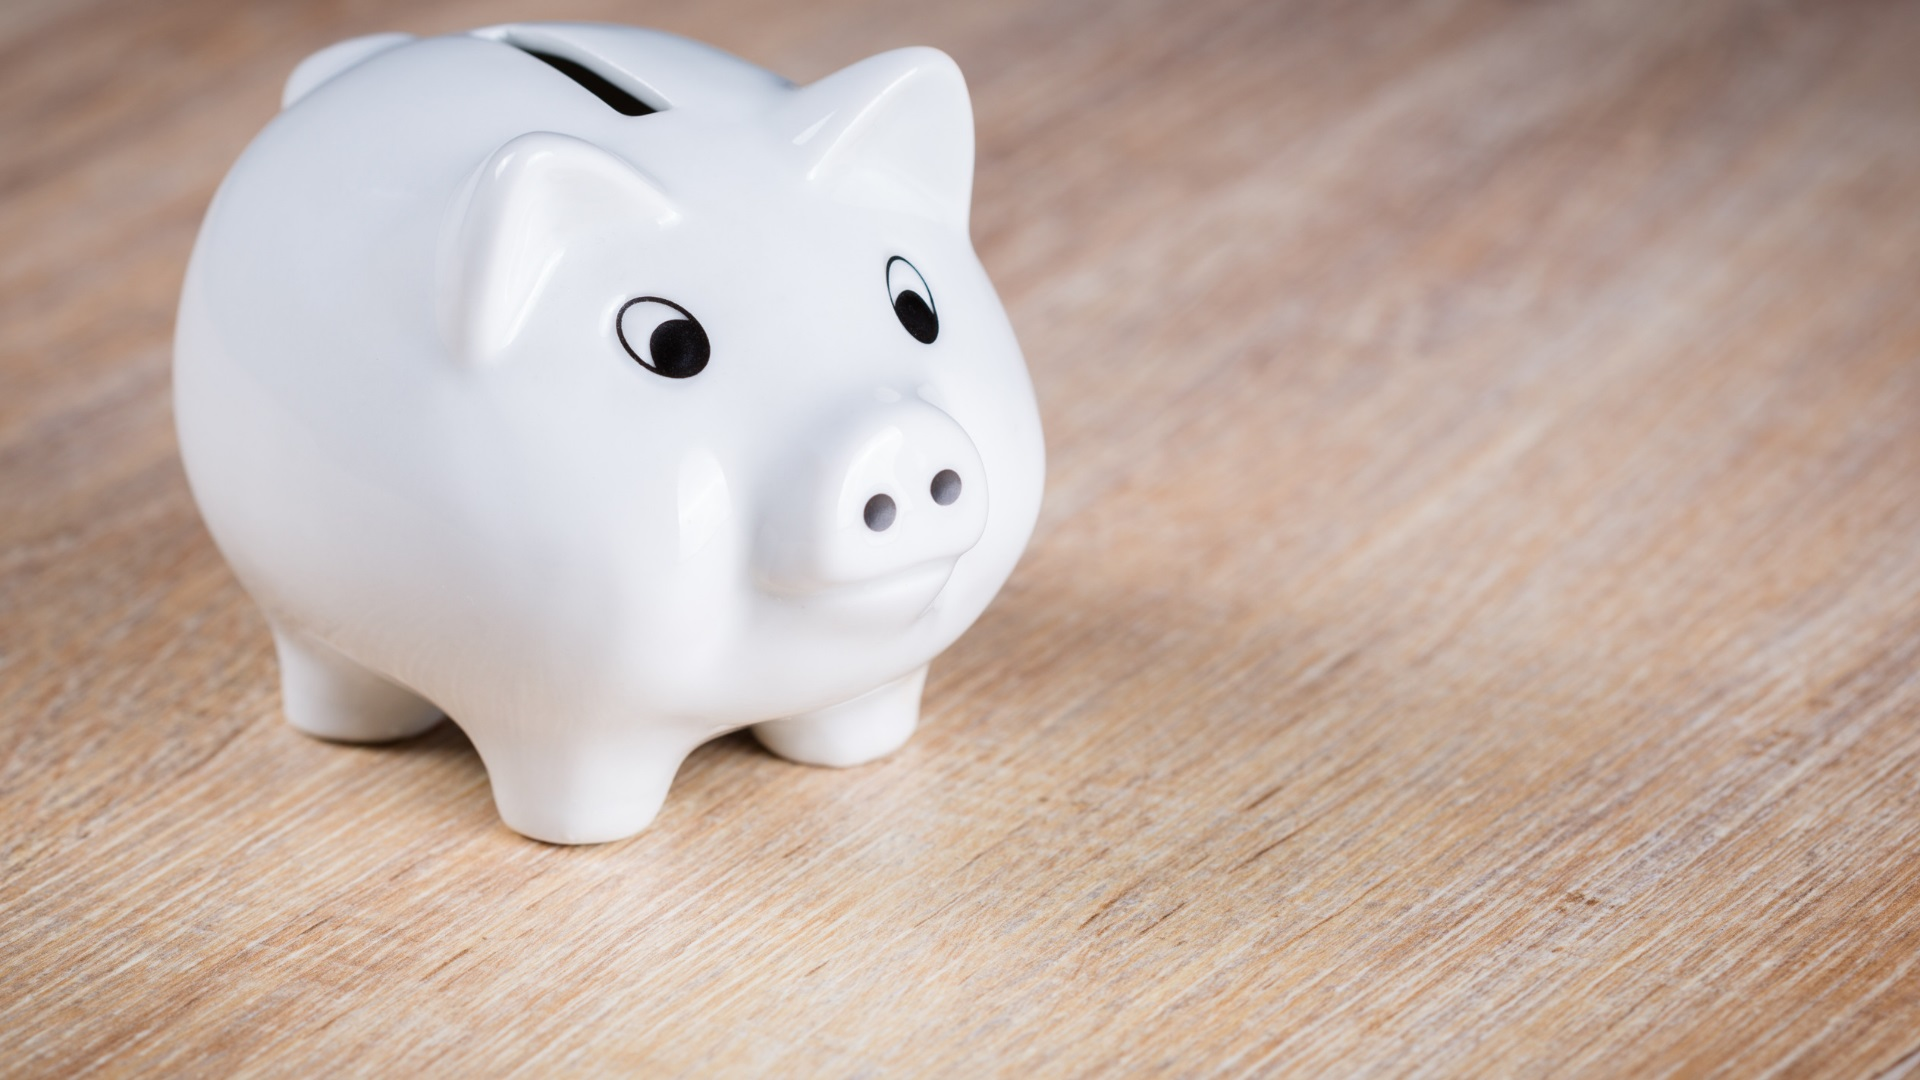 Affordable leisure activities helping you save money